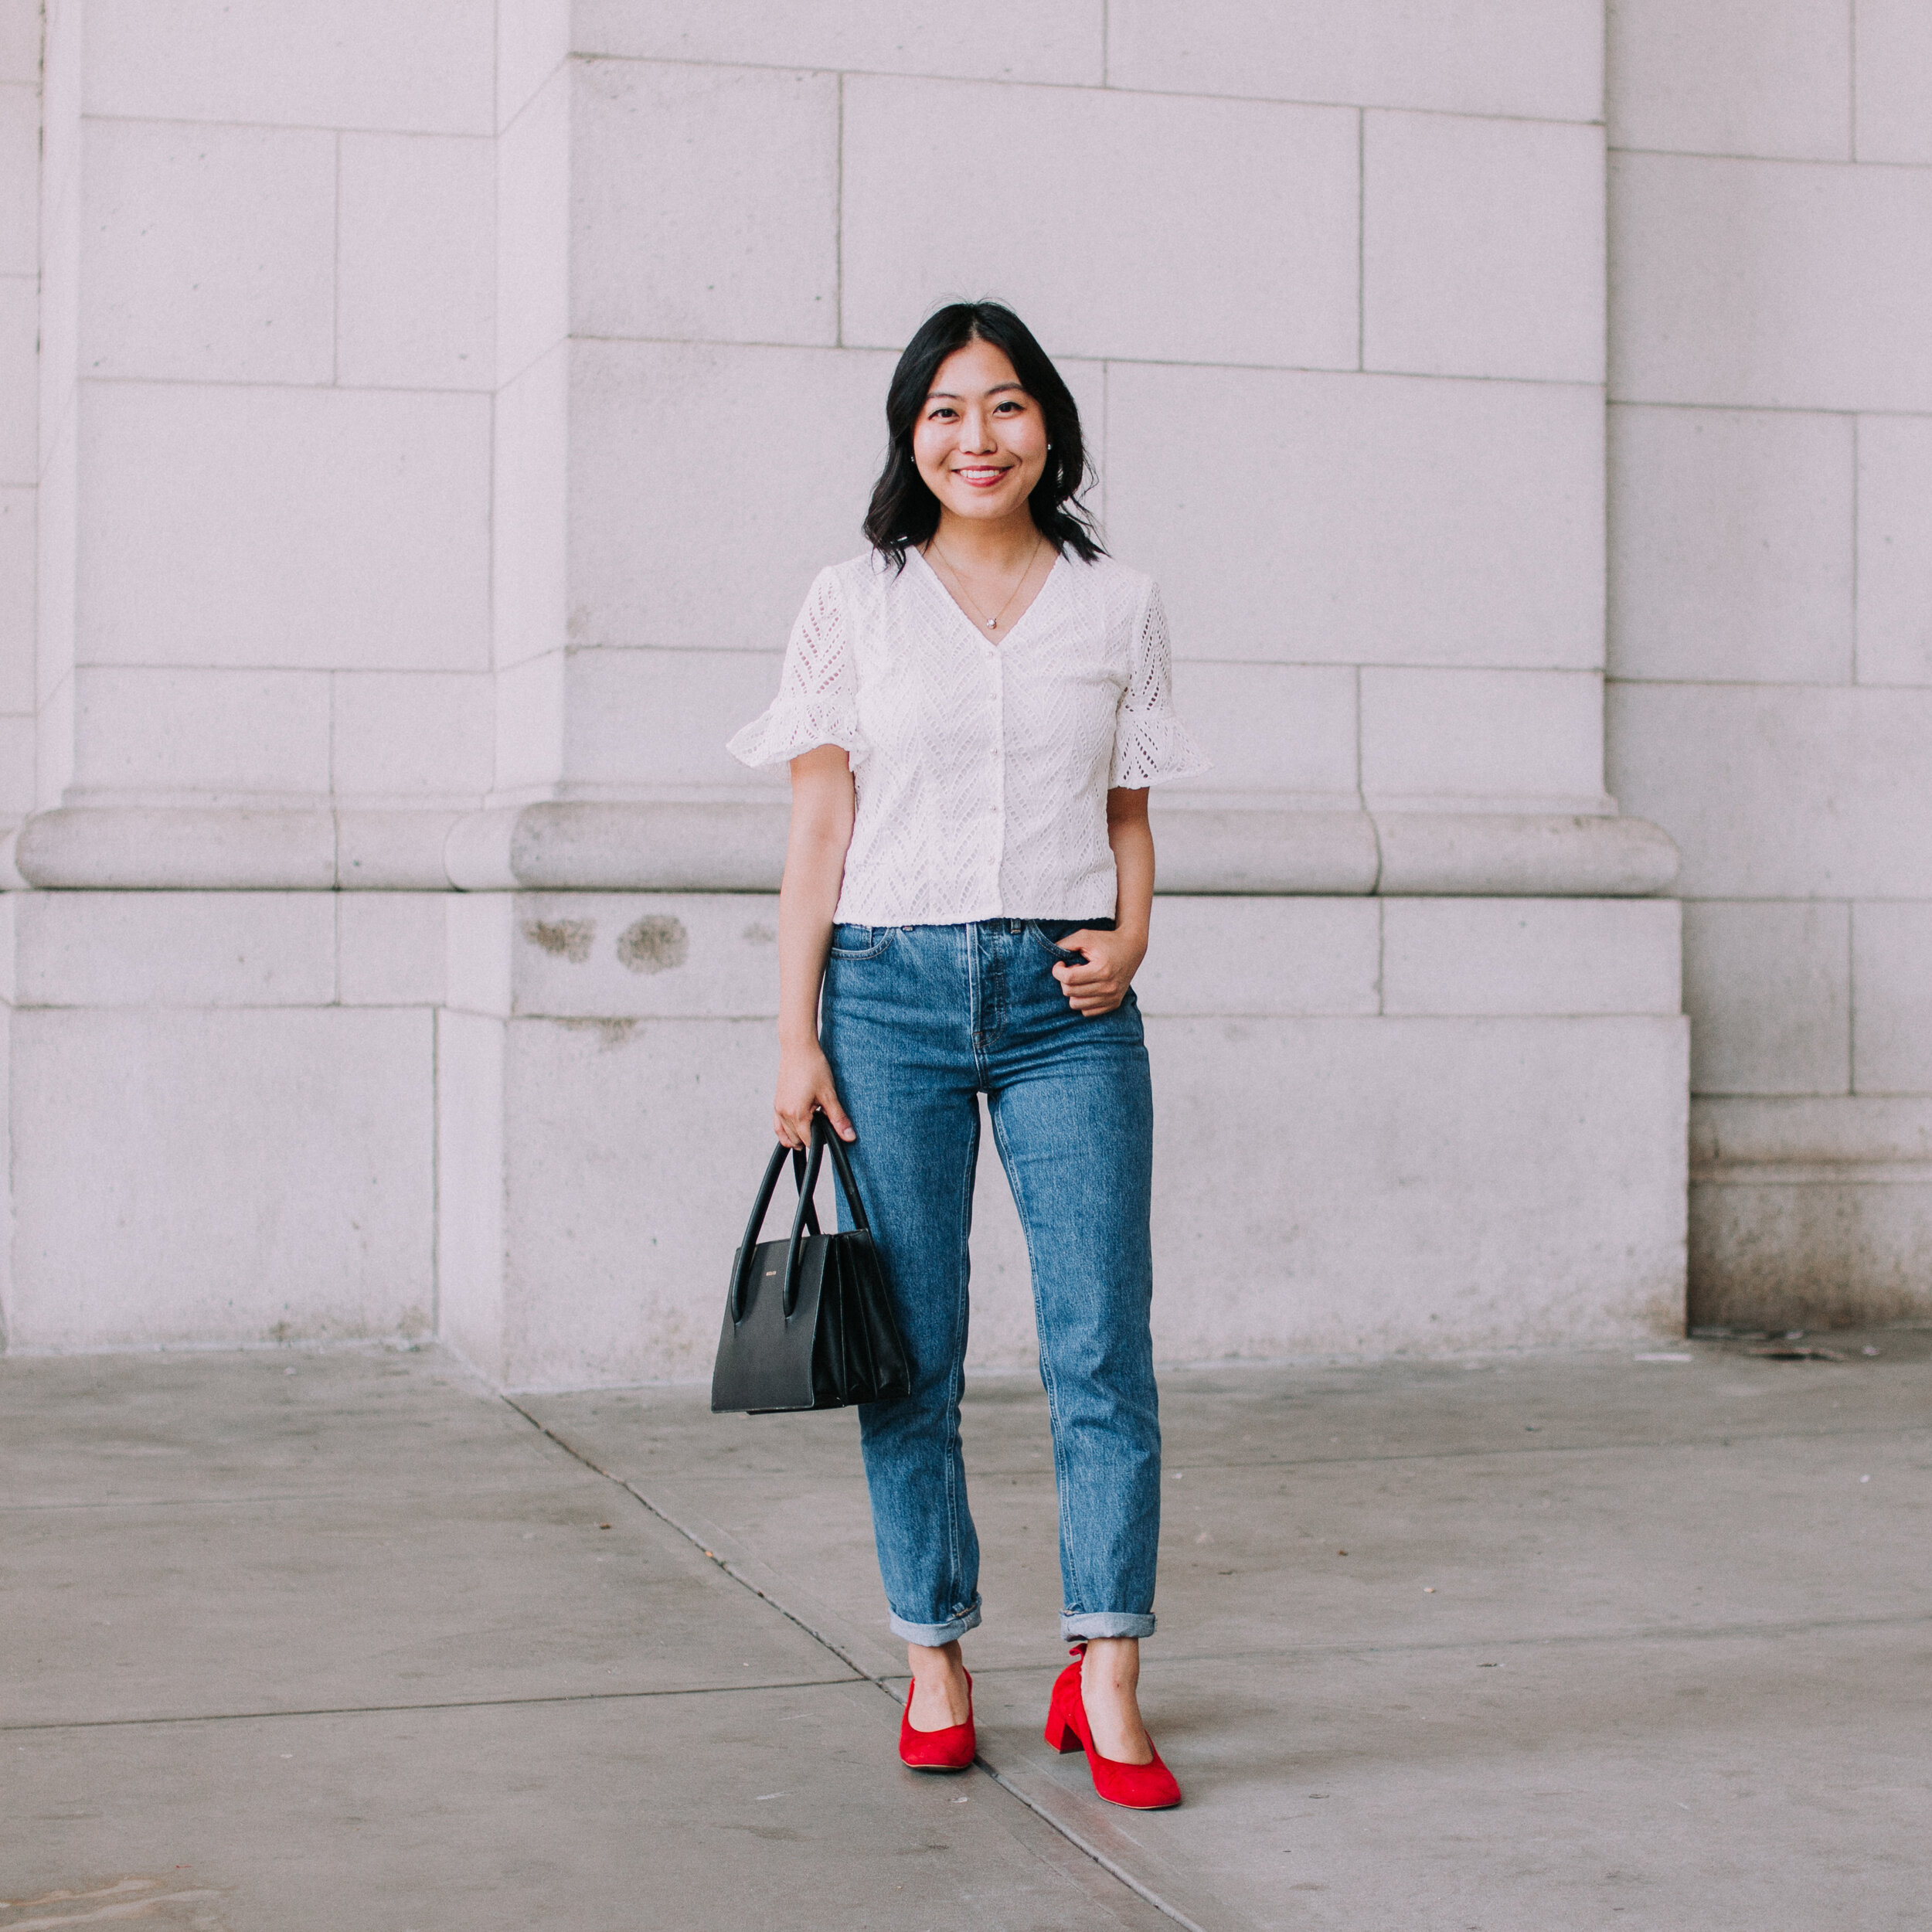 JNSQ Paola Blouse, Everlane 90s Cheeky straight jeans, Angela Roi Eleanor bag, Everlane red suede Day Heels